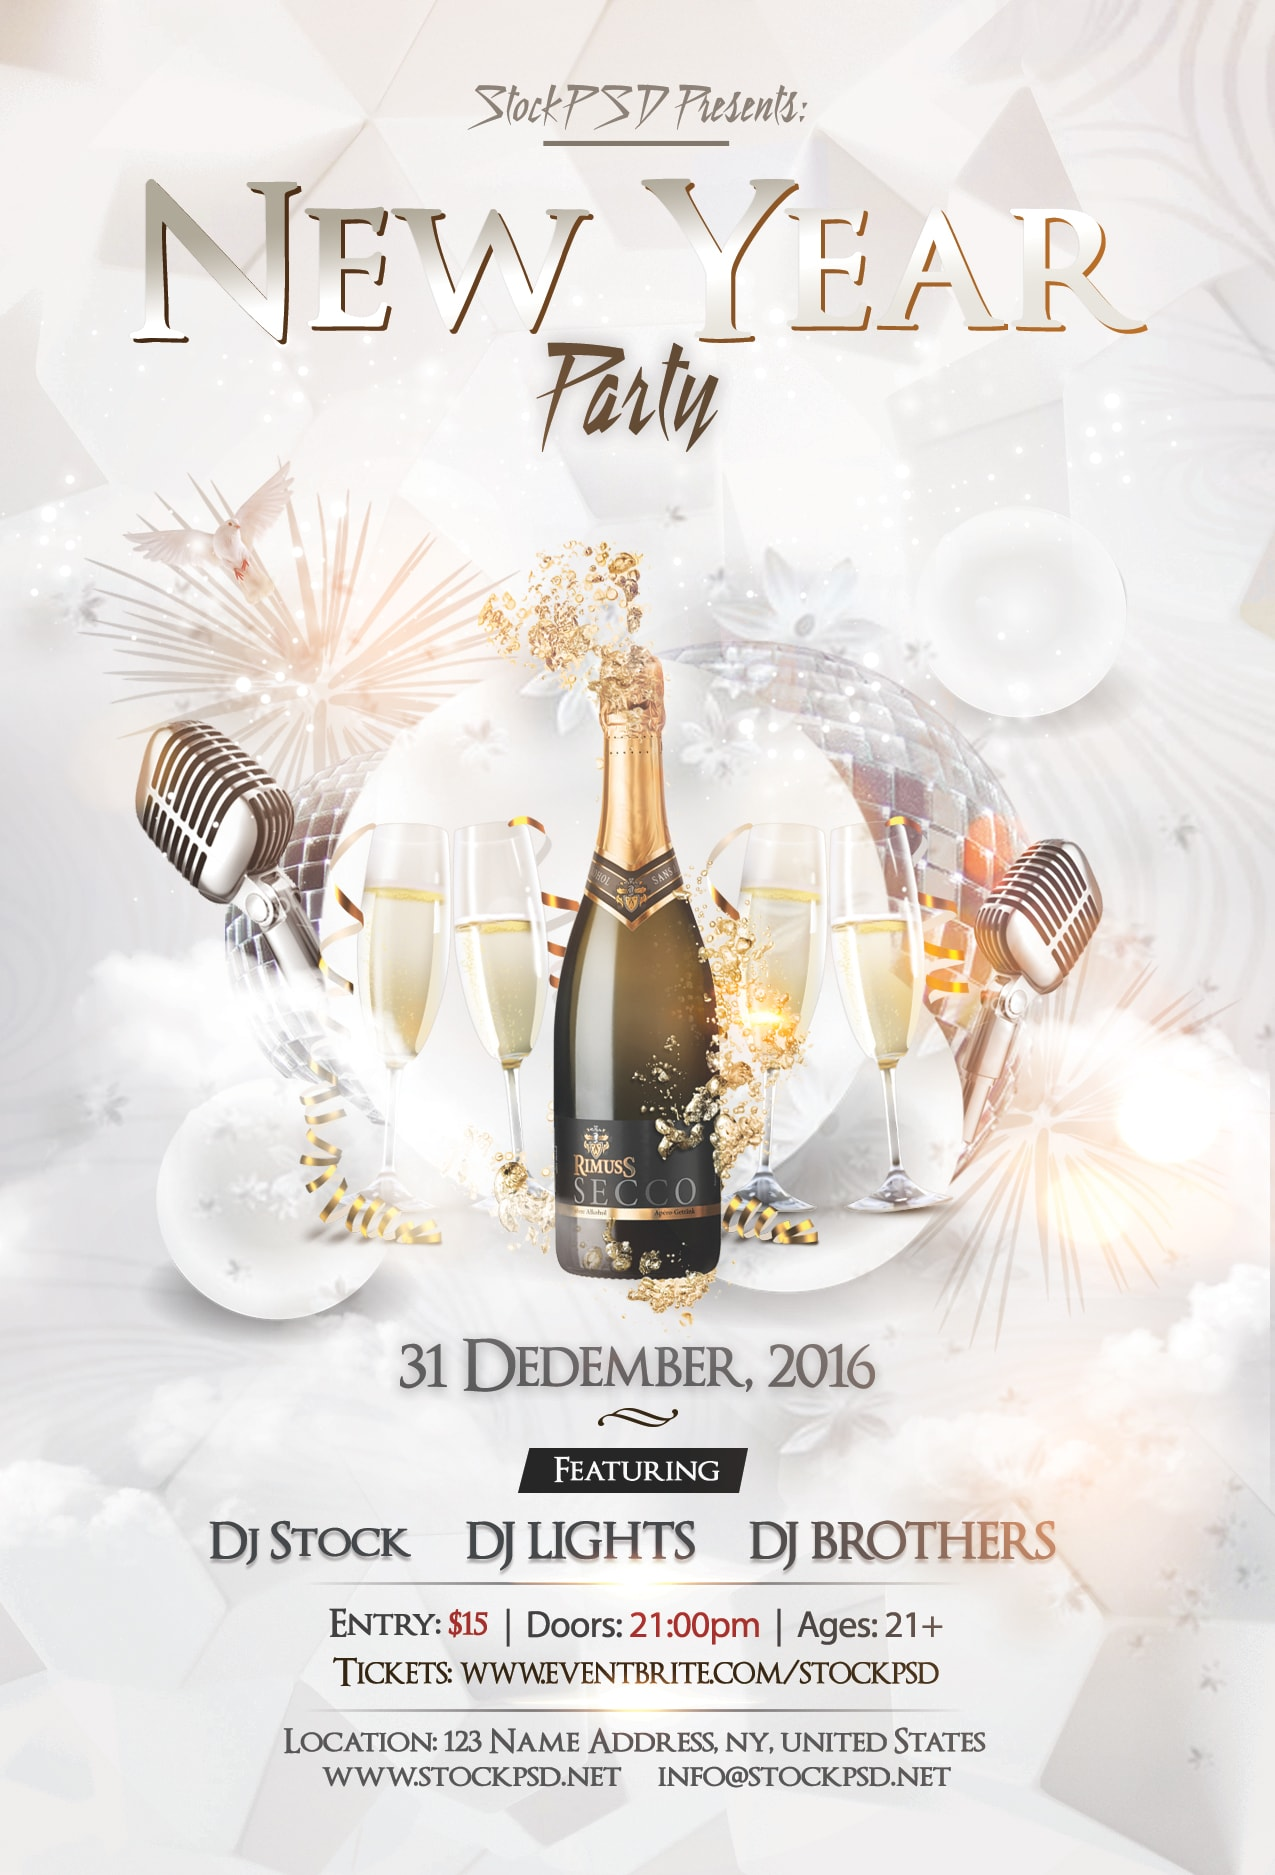 New Year Eve Party – PSD Free NYE Flyer Template - Pixelsdesign.net